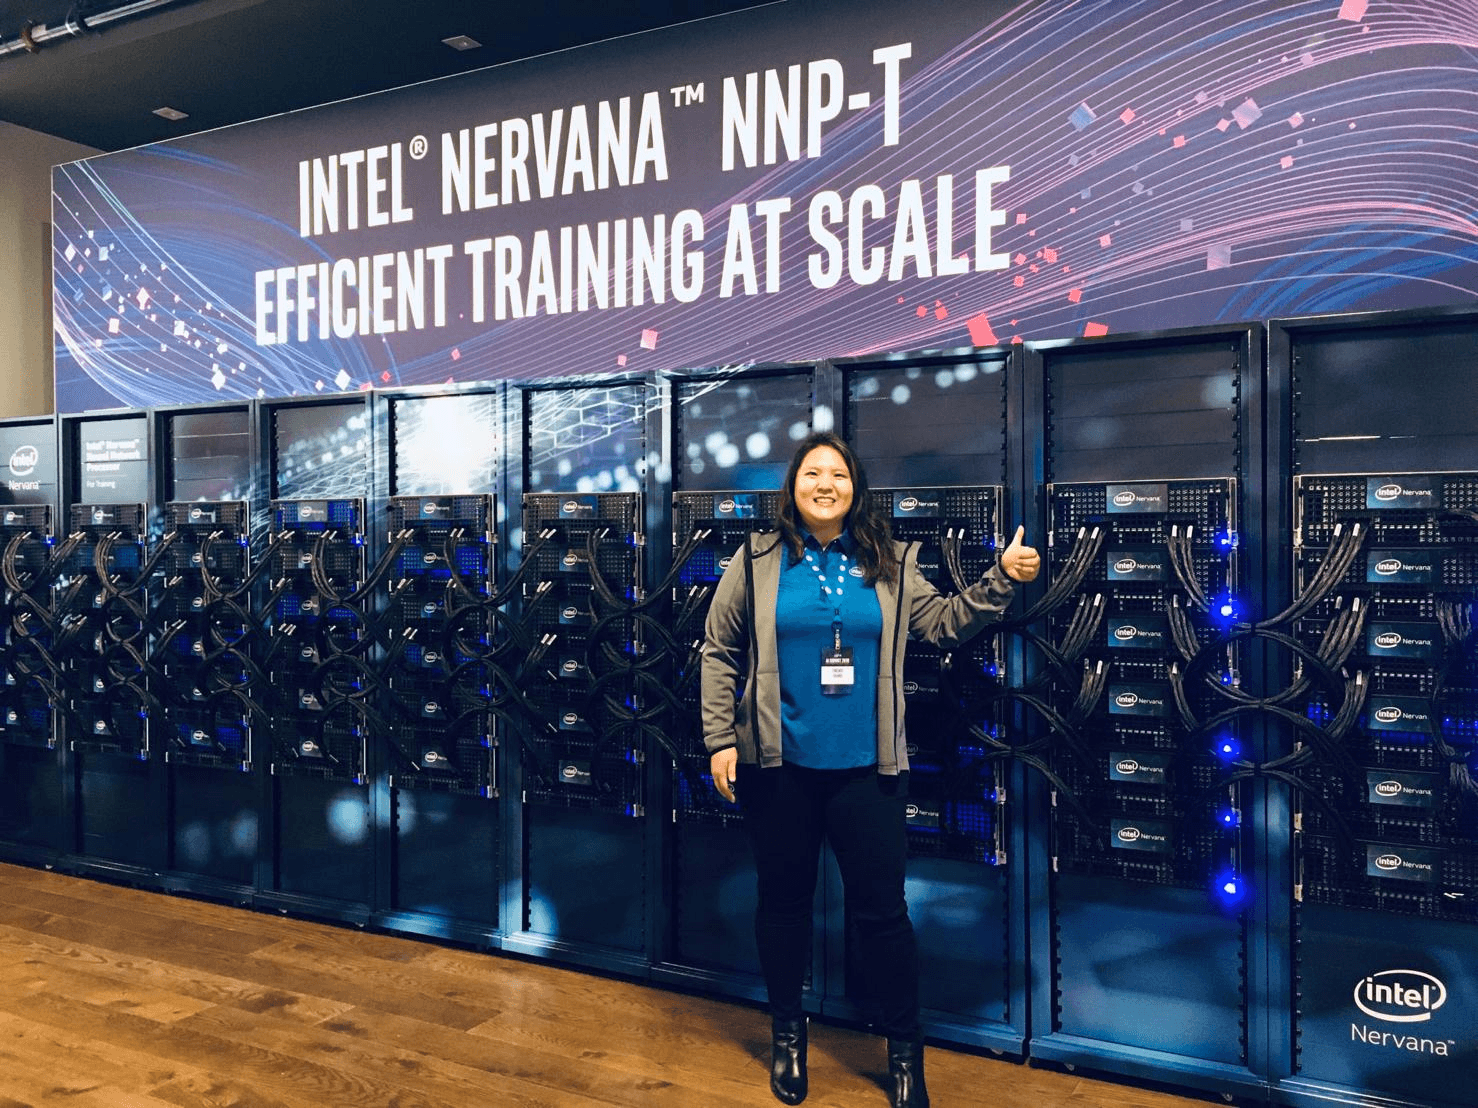 Tingwei Huang, Director of Product Management for Intel's AI Products Group, stands in front of a 10-rack Intel AI system powered by 480 Intel Nervana NNP-T chips